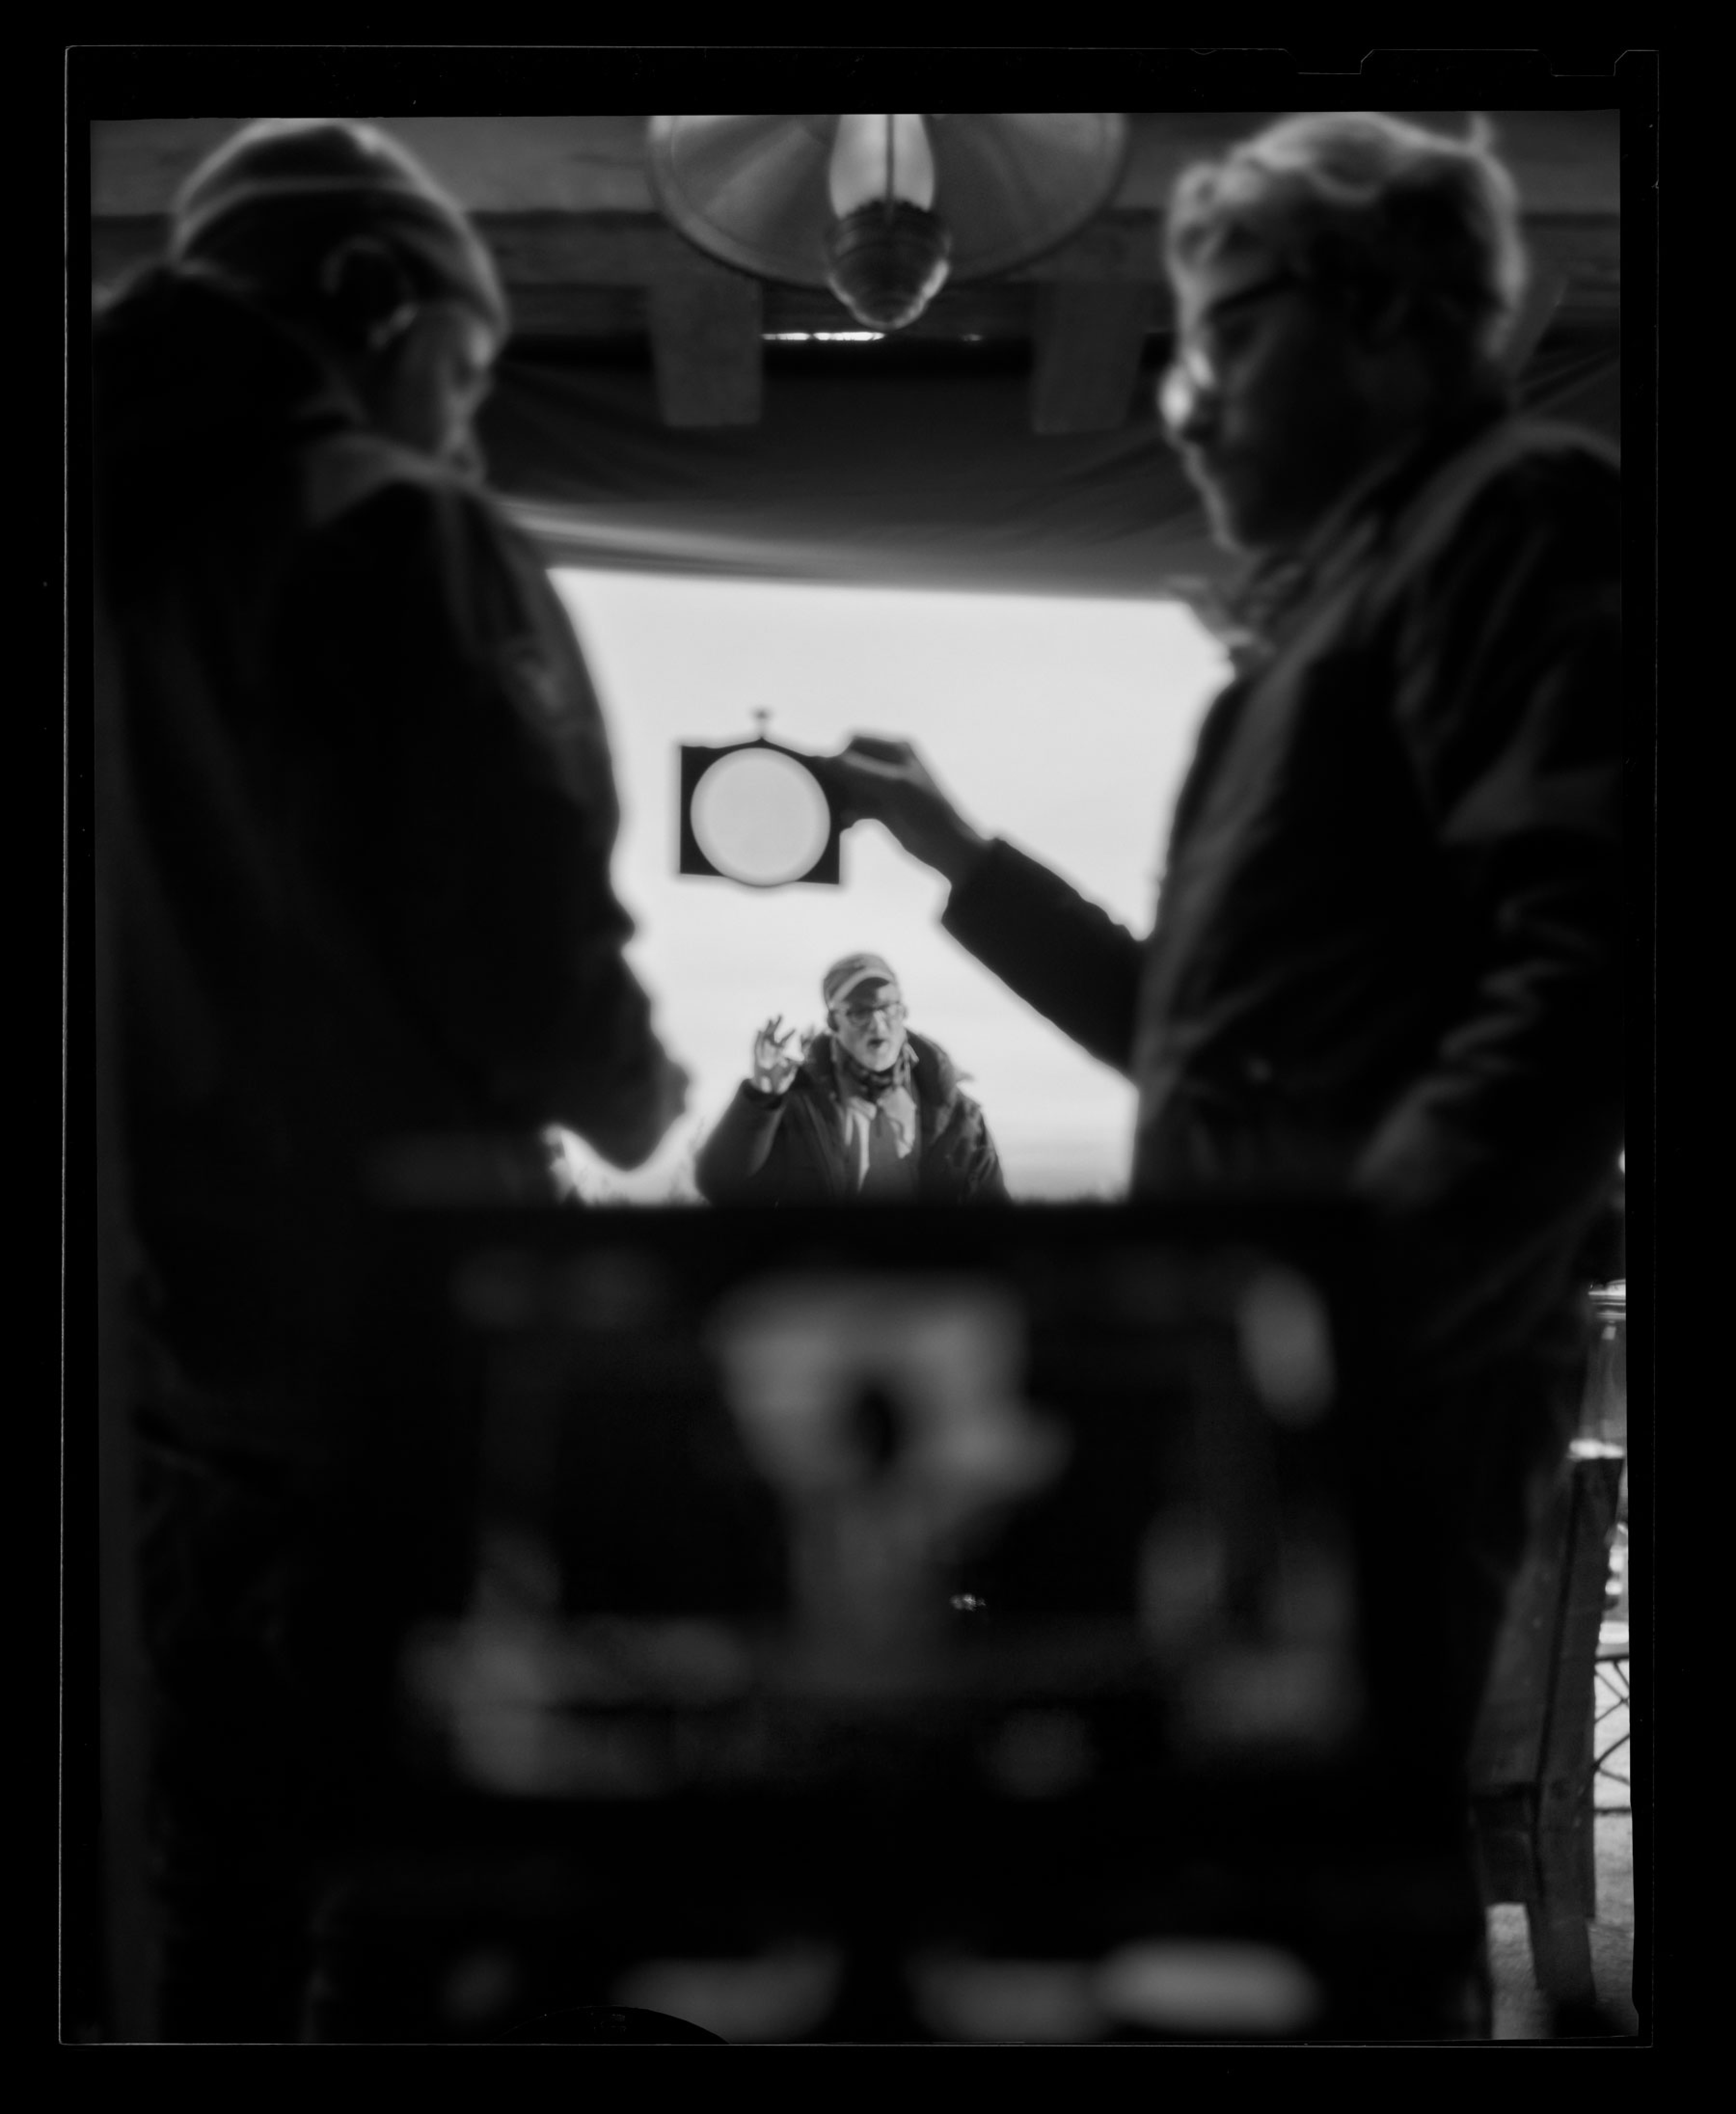 Fincher and Messerschmidt hold up a lens in this behind-the-scenes shot.